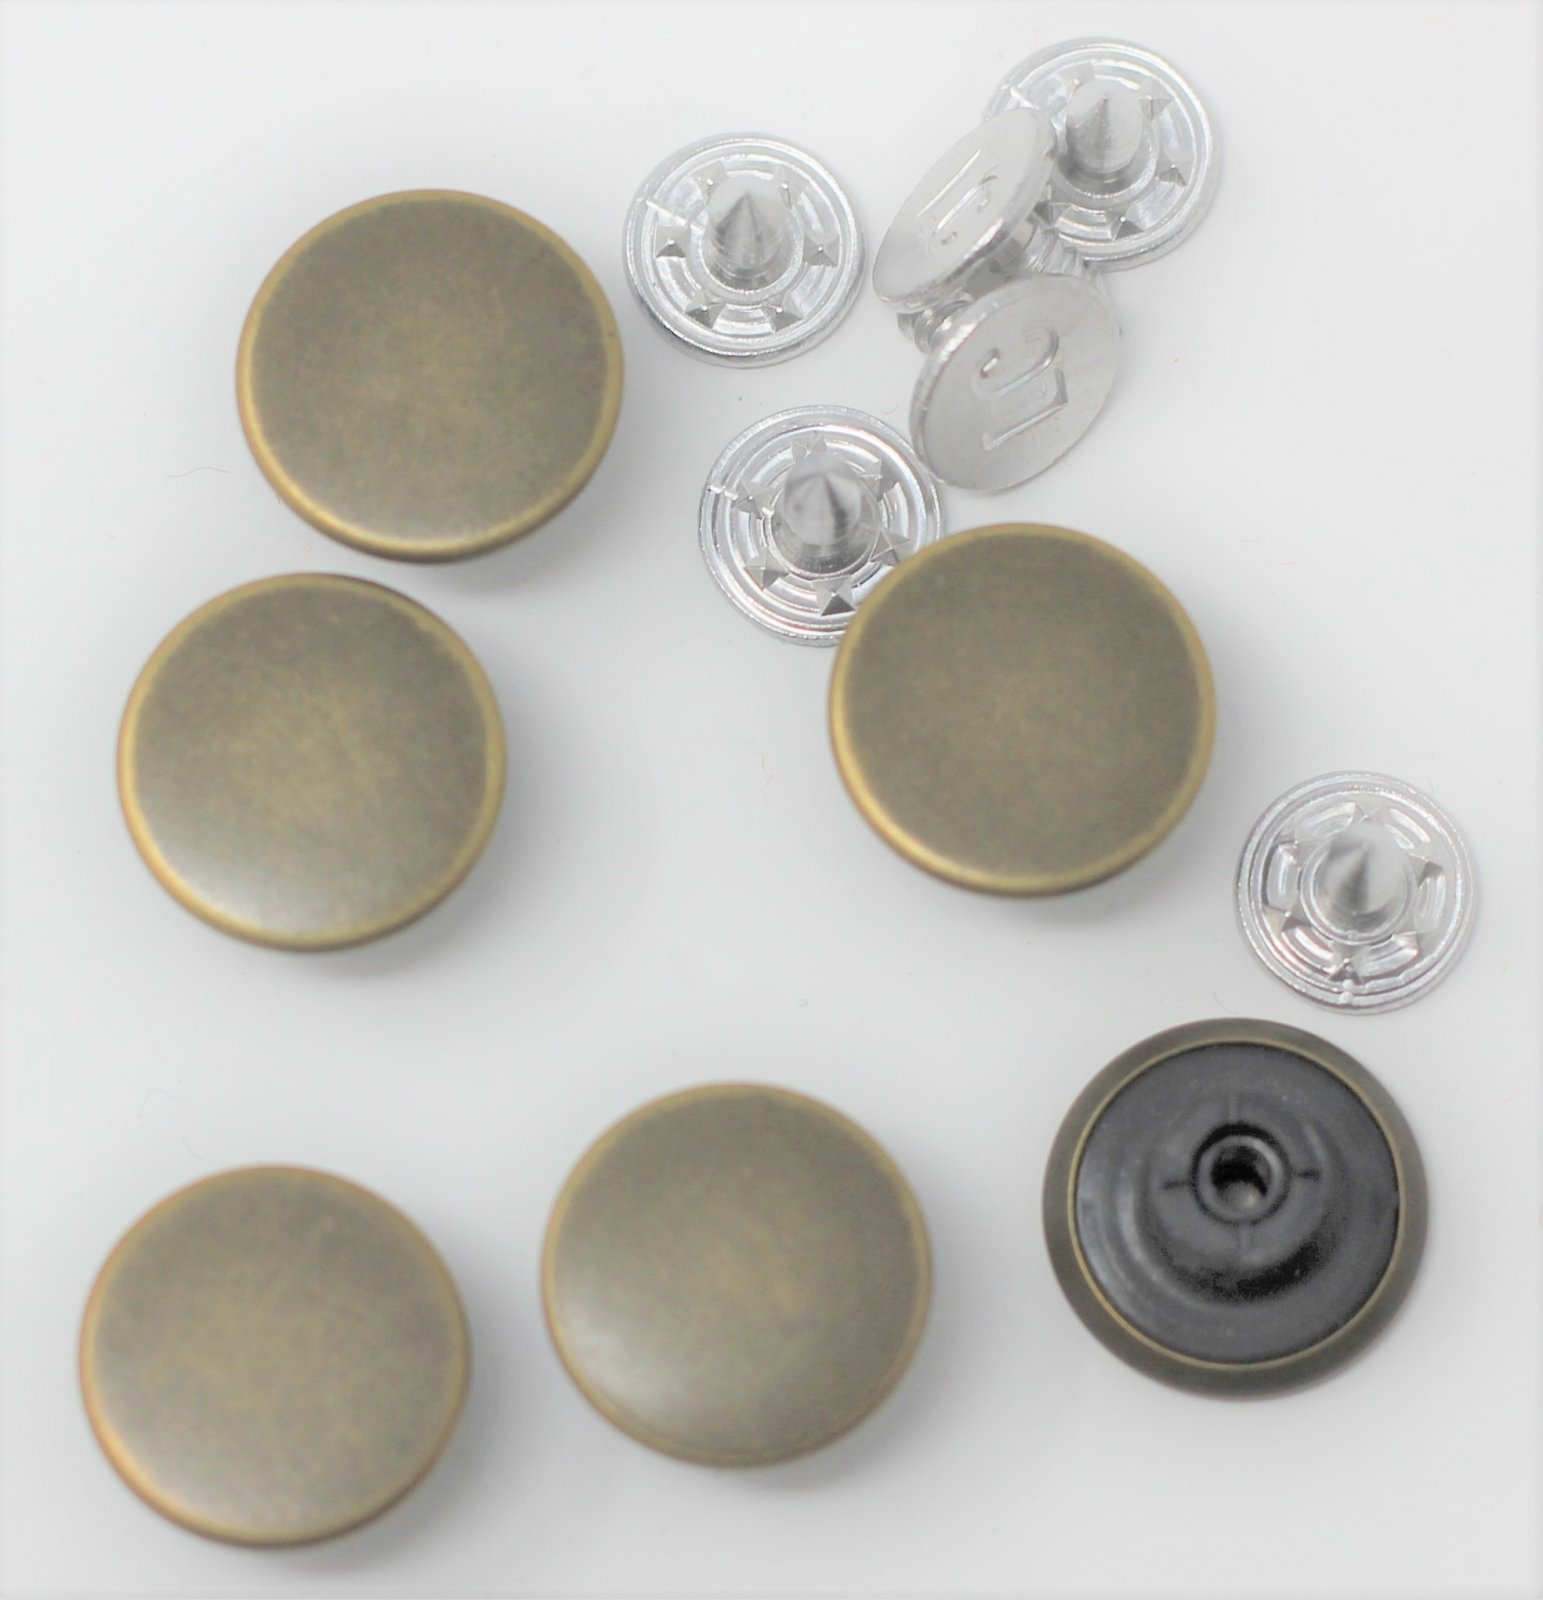 Dungaree buttons for jeans, set of six in antique brasstone